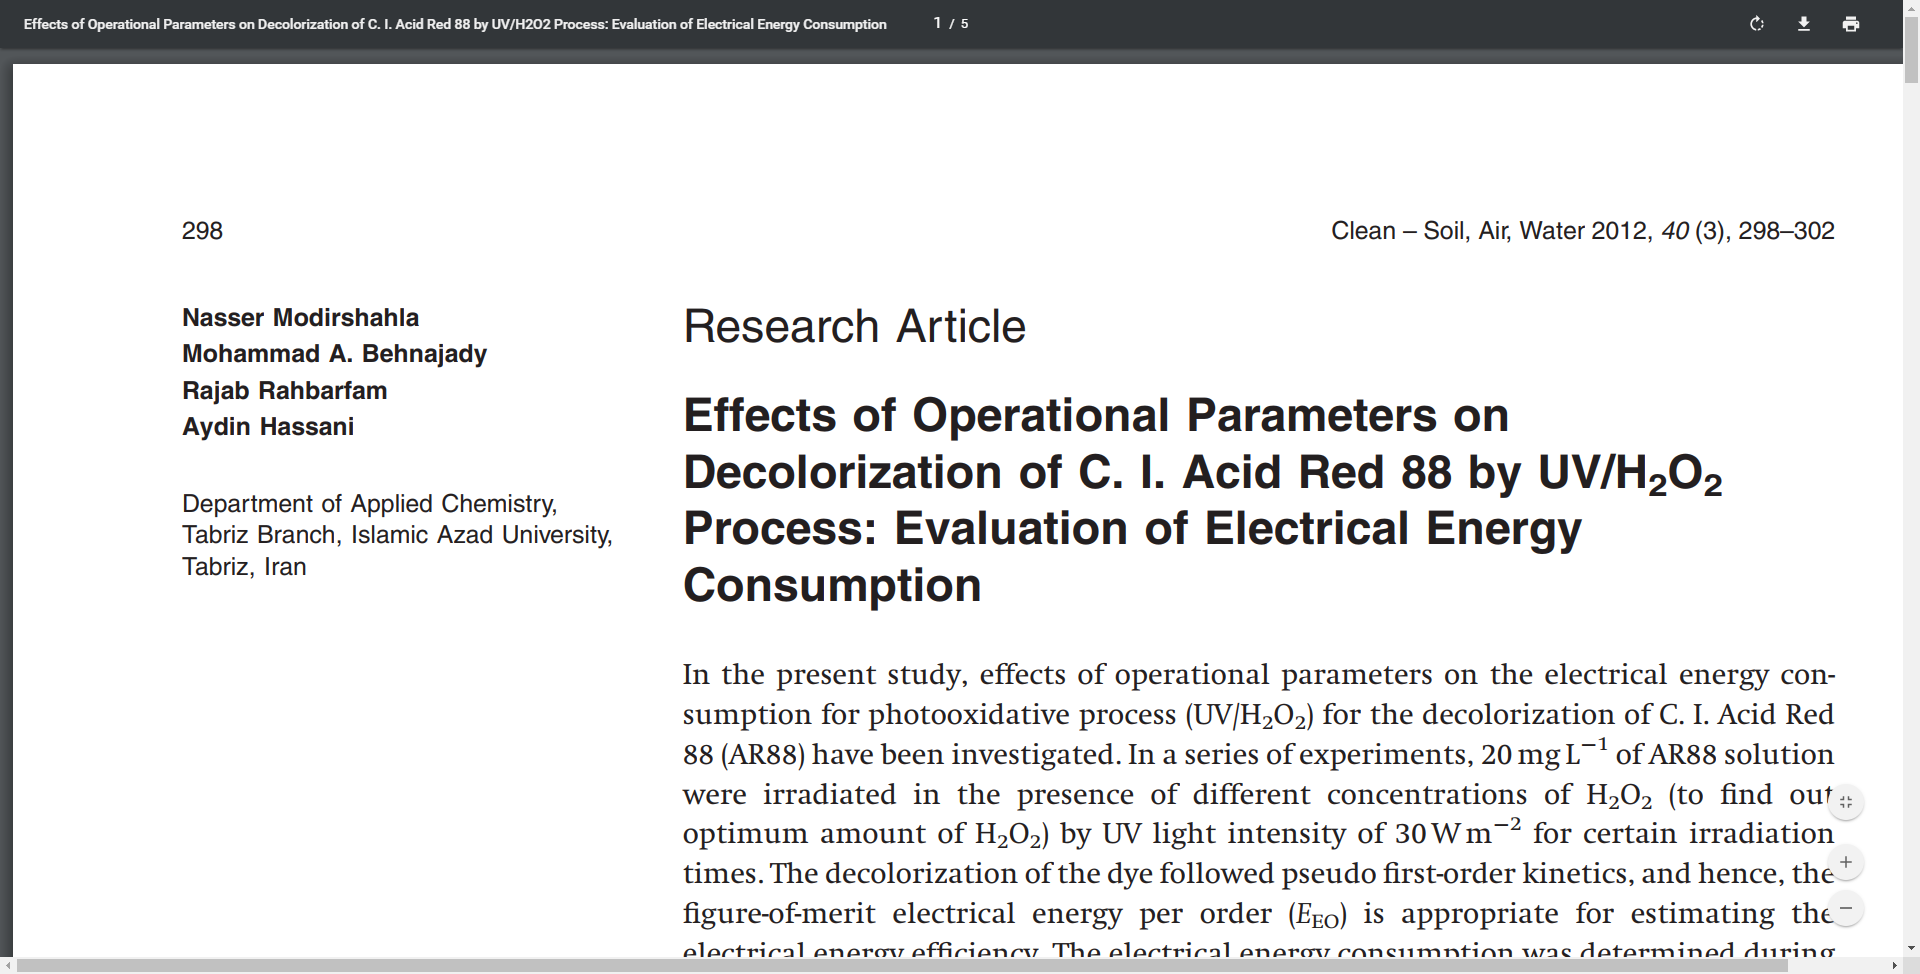 Effects of Operational Parameters on Decolorization of C. I